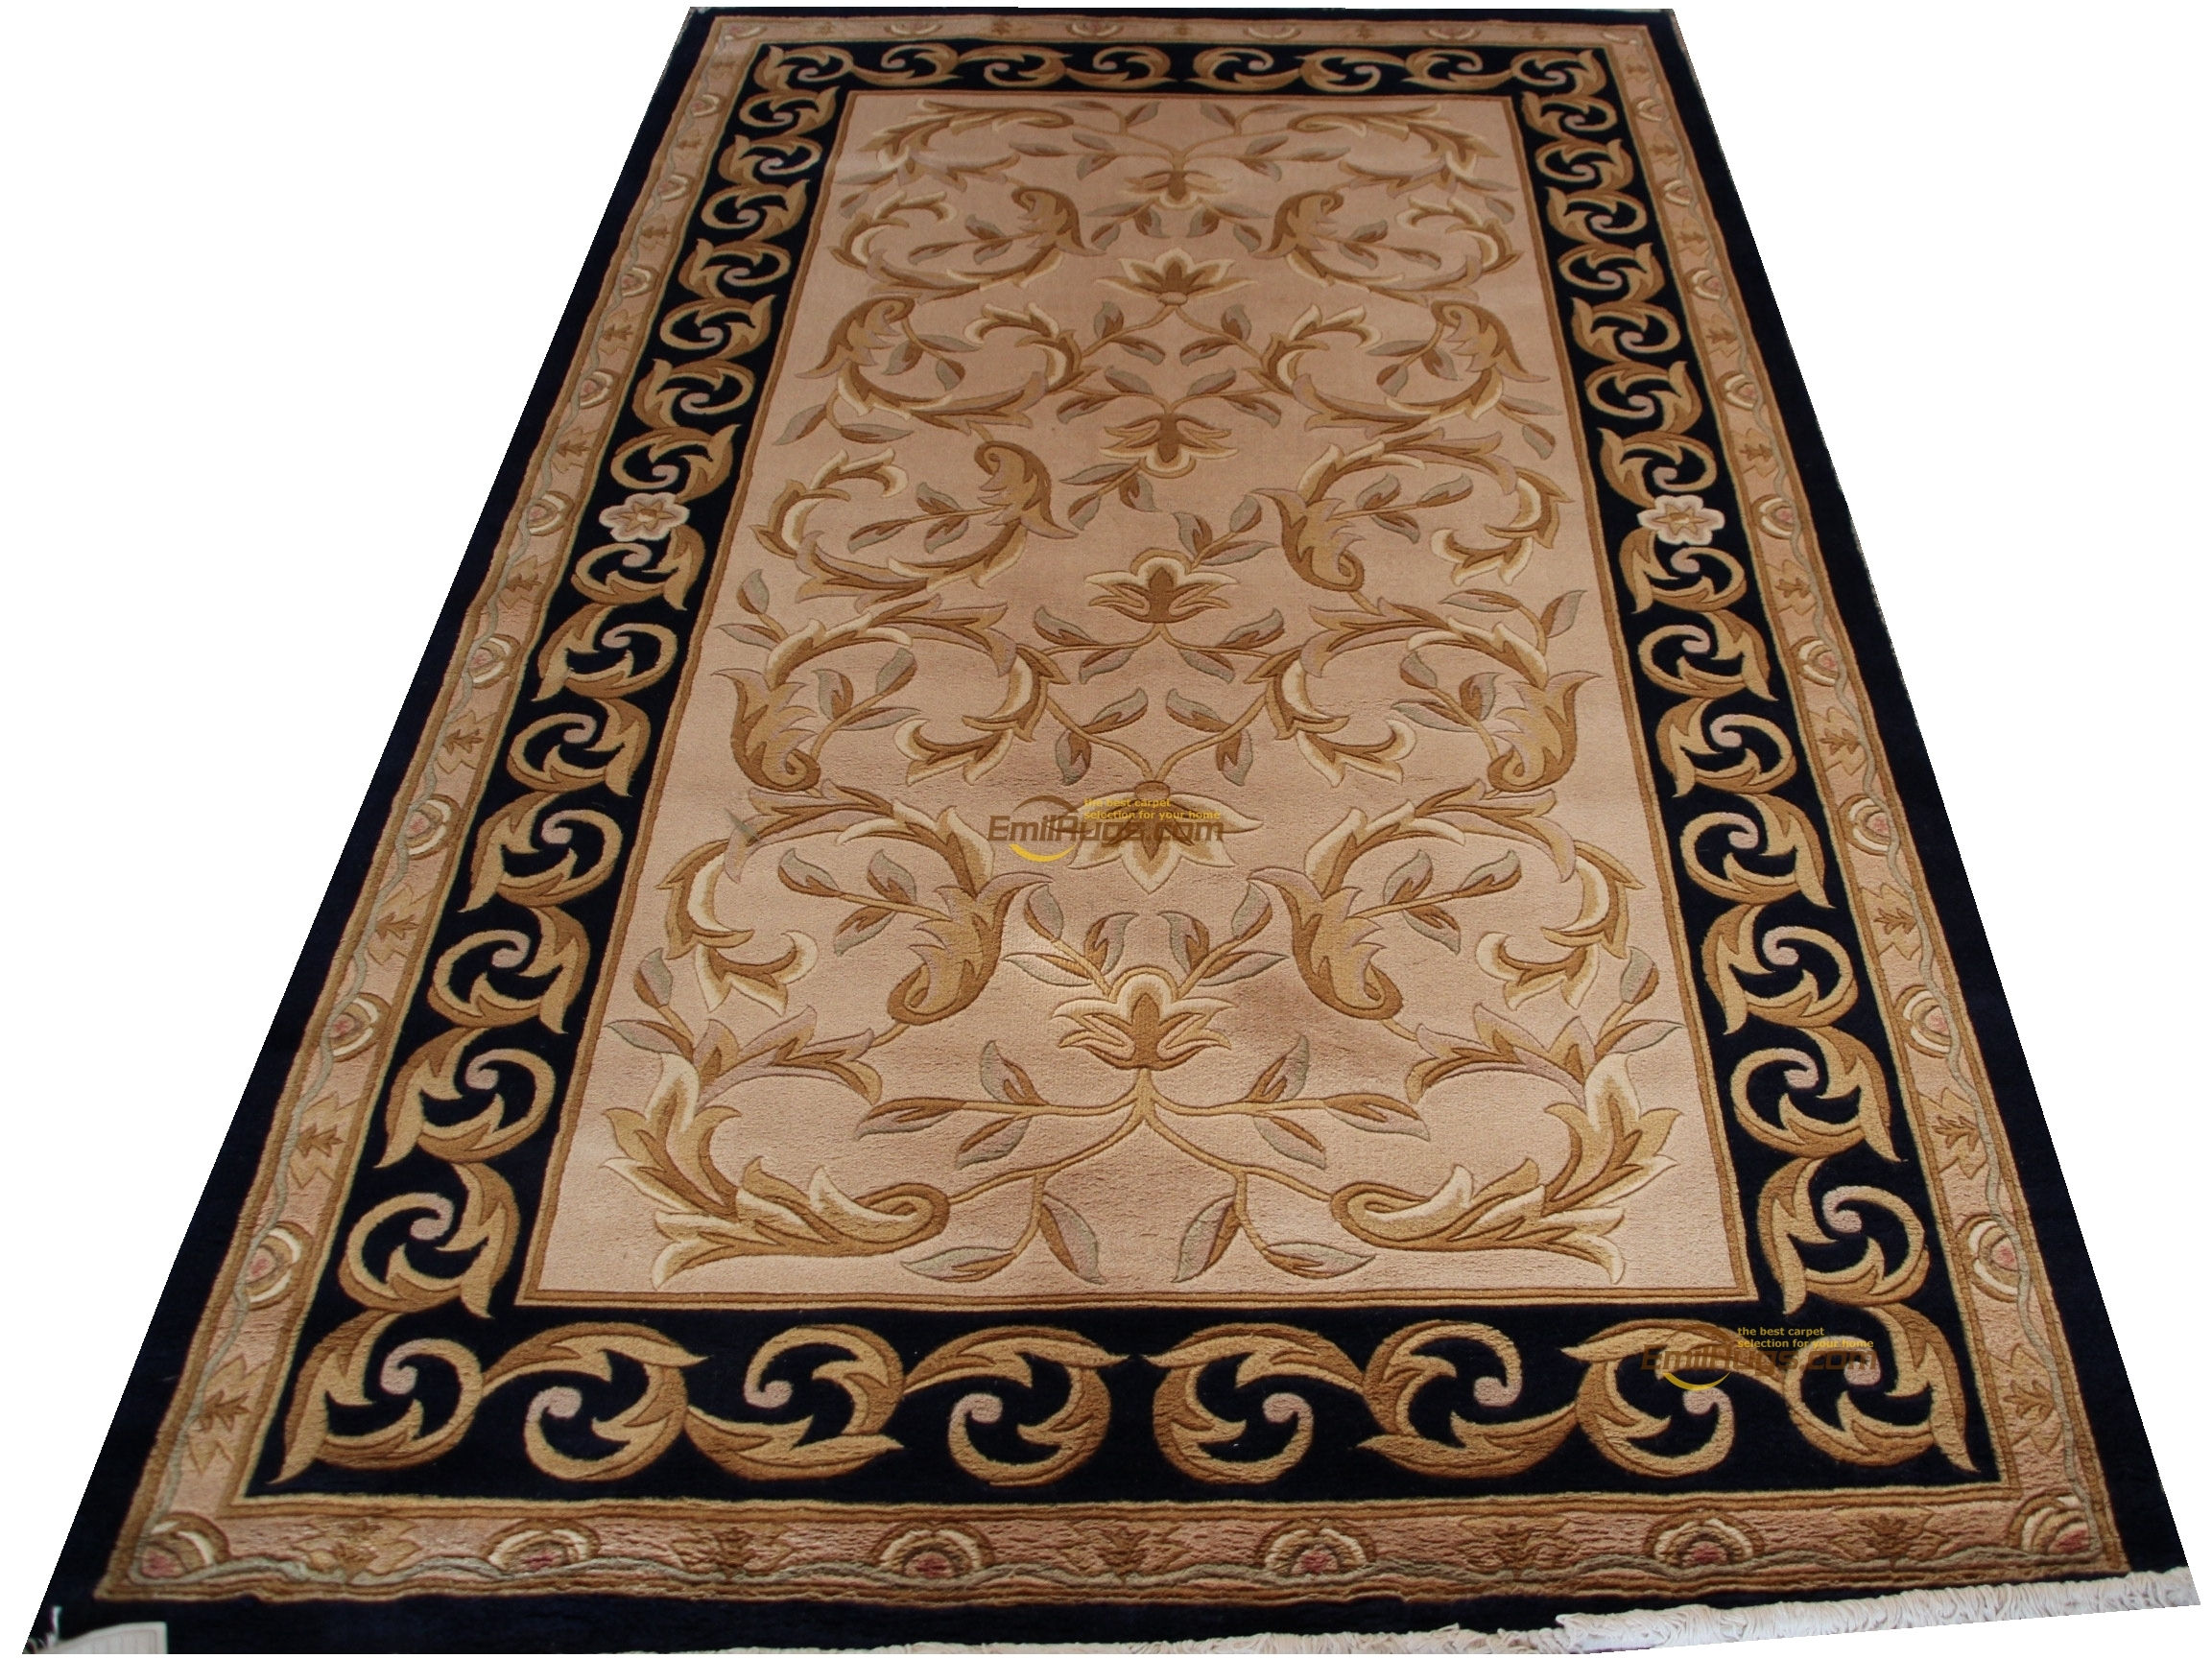 Home Decor Handwoven Antique Decor Exquisite Runner Room Carpet The Plant Design Natural Sheep WoolHome Decor Handwoven Antique Decor Exquisite Runner Room Carpet The Plant Design Natural Sheep Wool